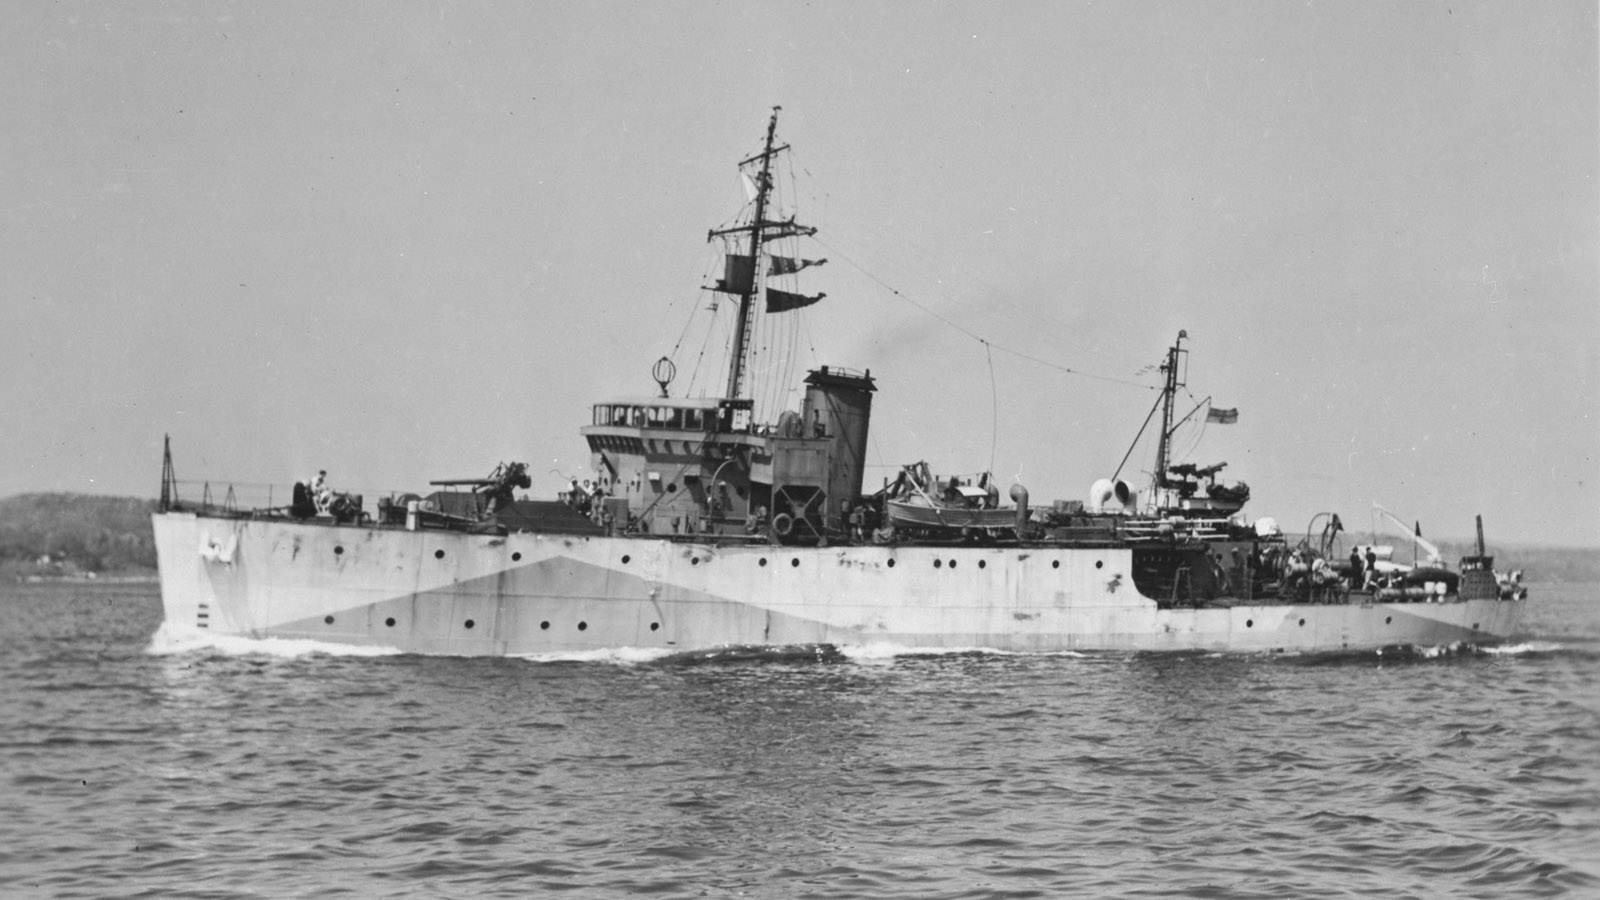 HMCS Grandmère was a Bangor class minesweeper. On October 11, 1942, while with Sydney Force, it rescued 101 survivors of the passenger ferry SS Caribou, torpedoed in the Cabot Strait.